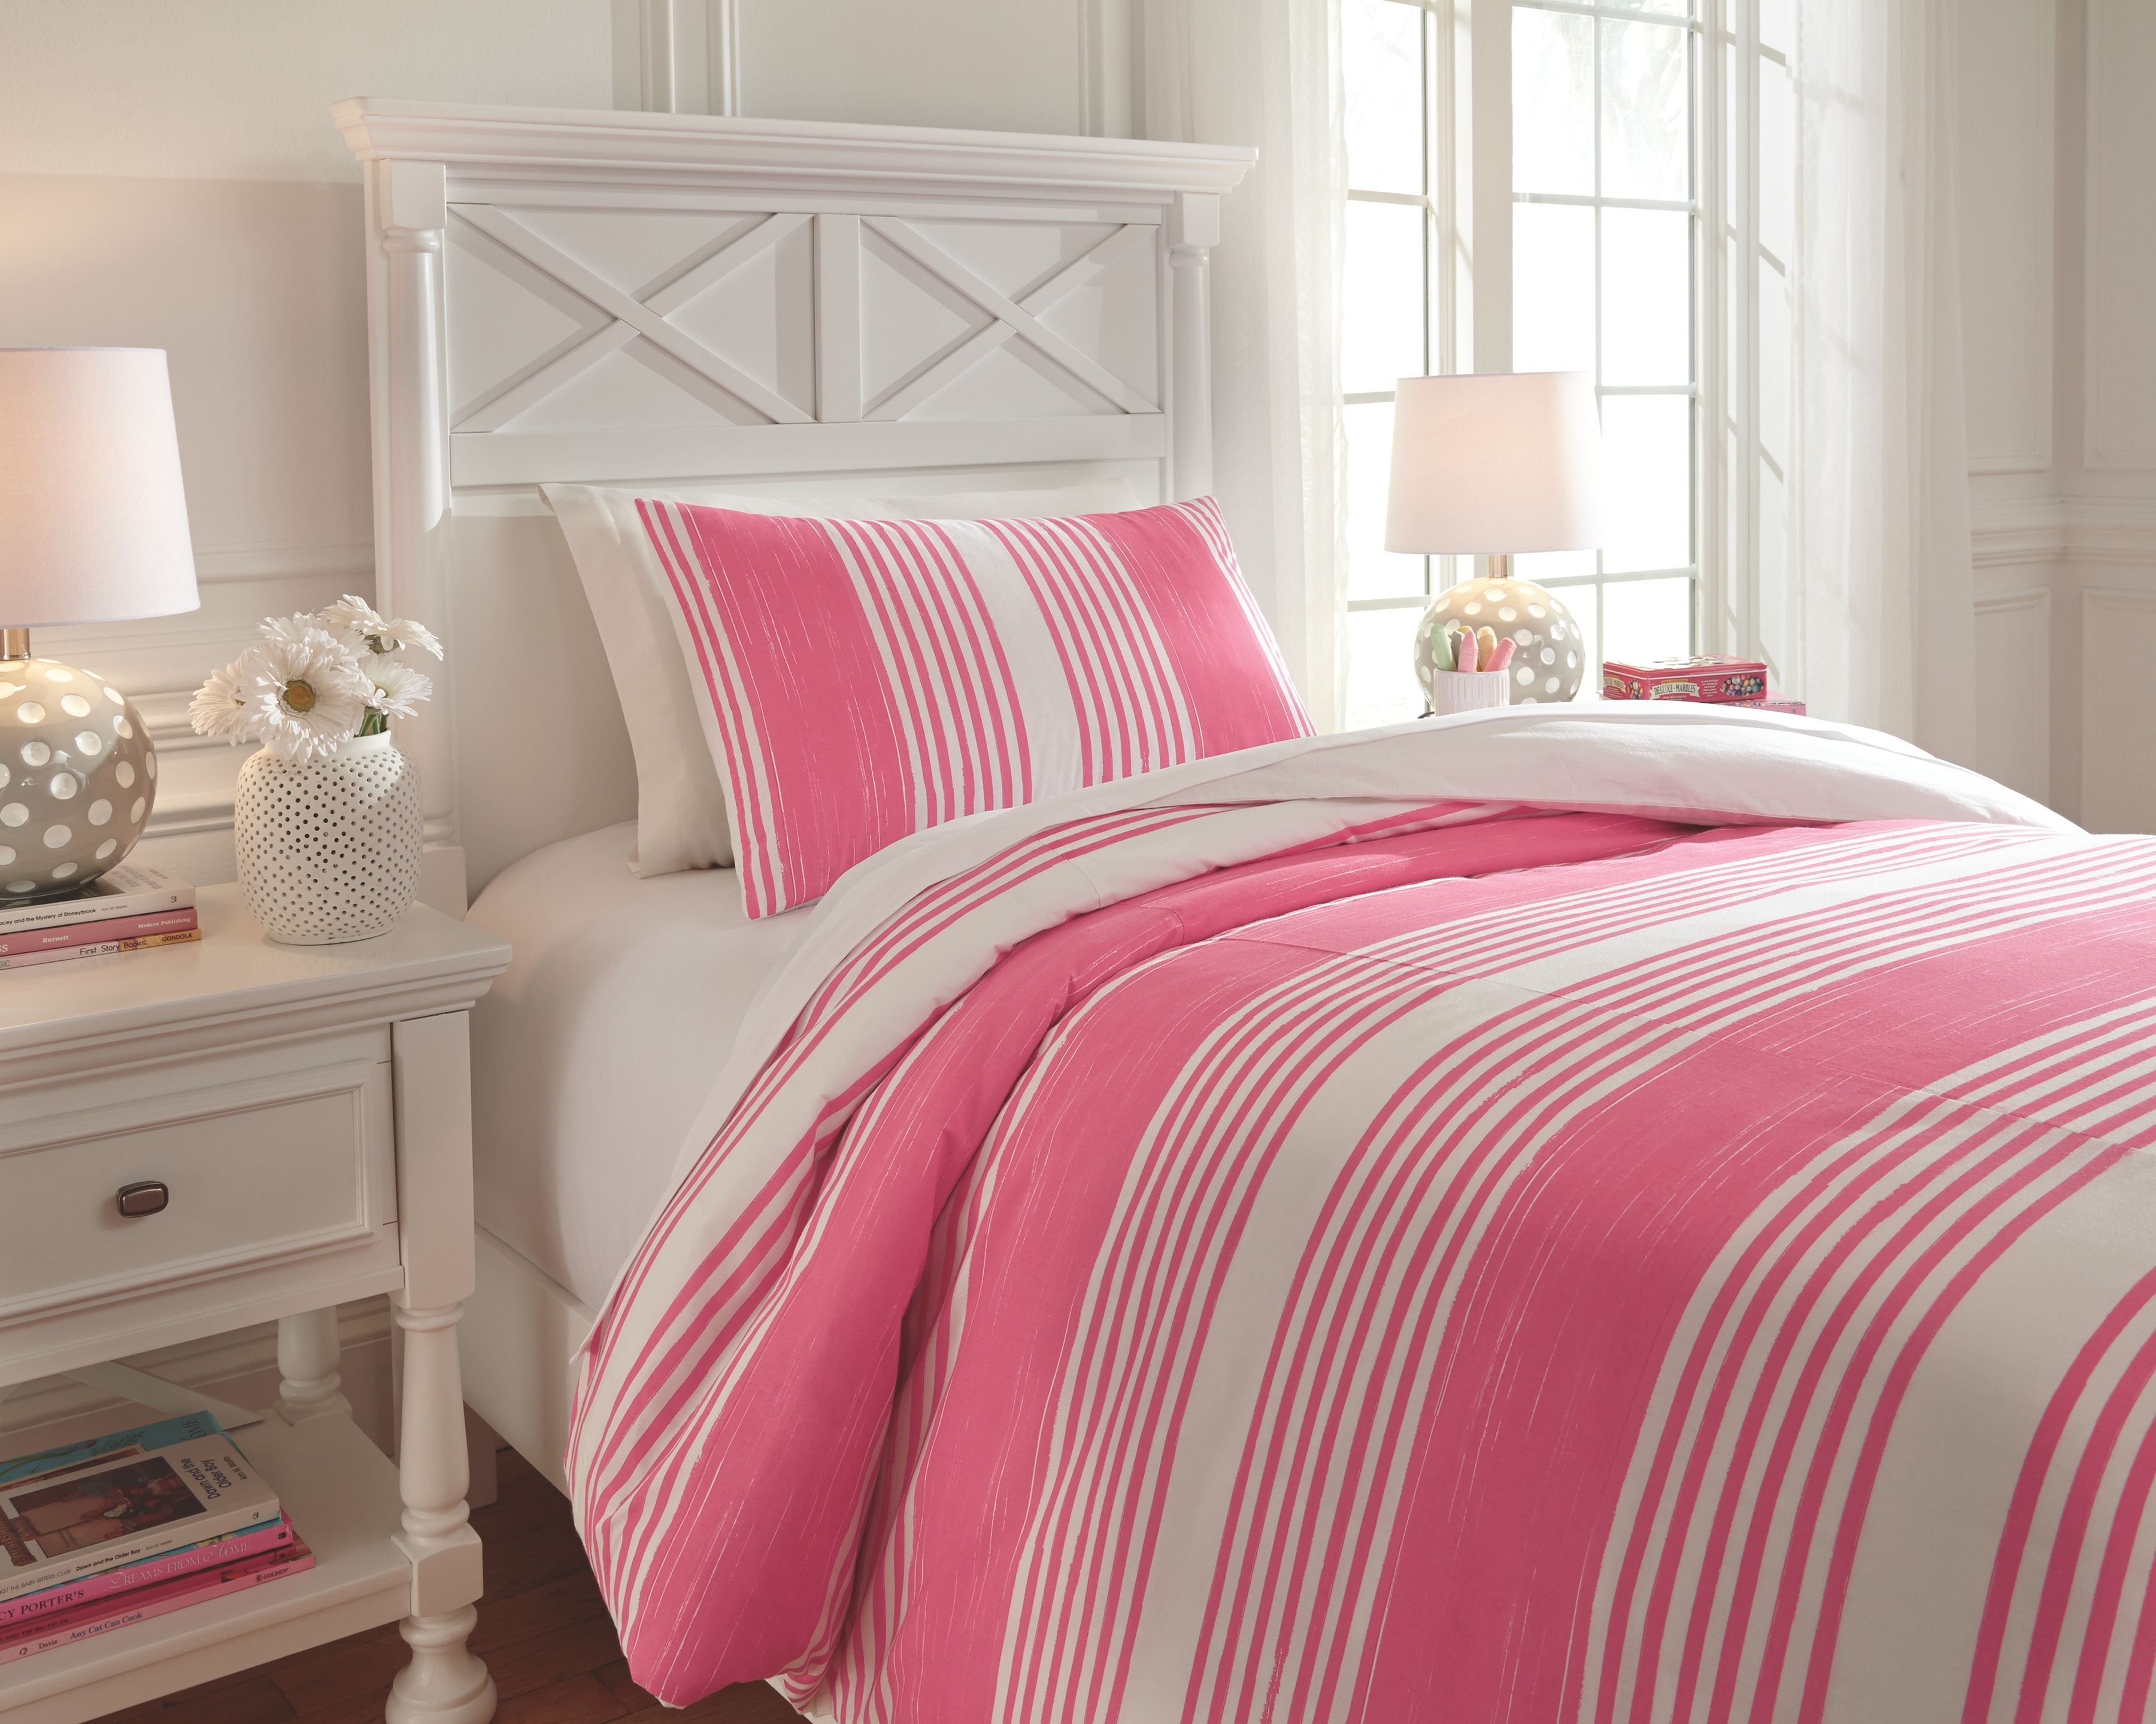 Taries 2 Piece Twin Duvet Cover Set Pink In 2020 Comforter Sets